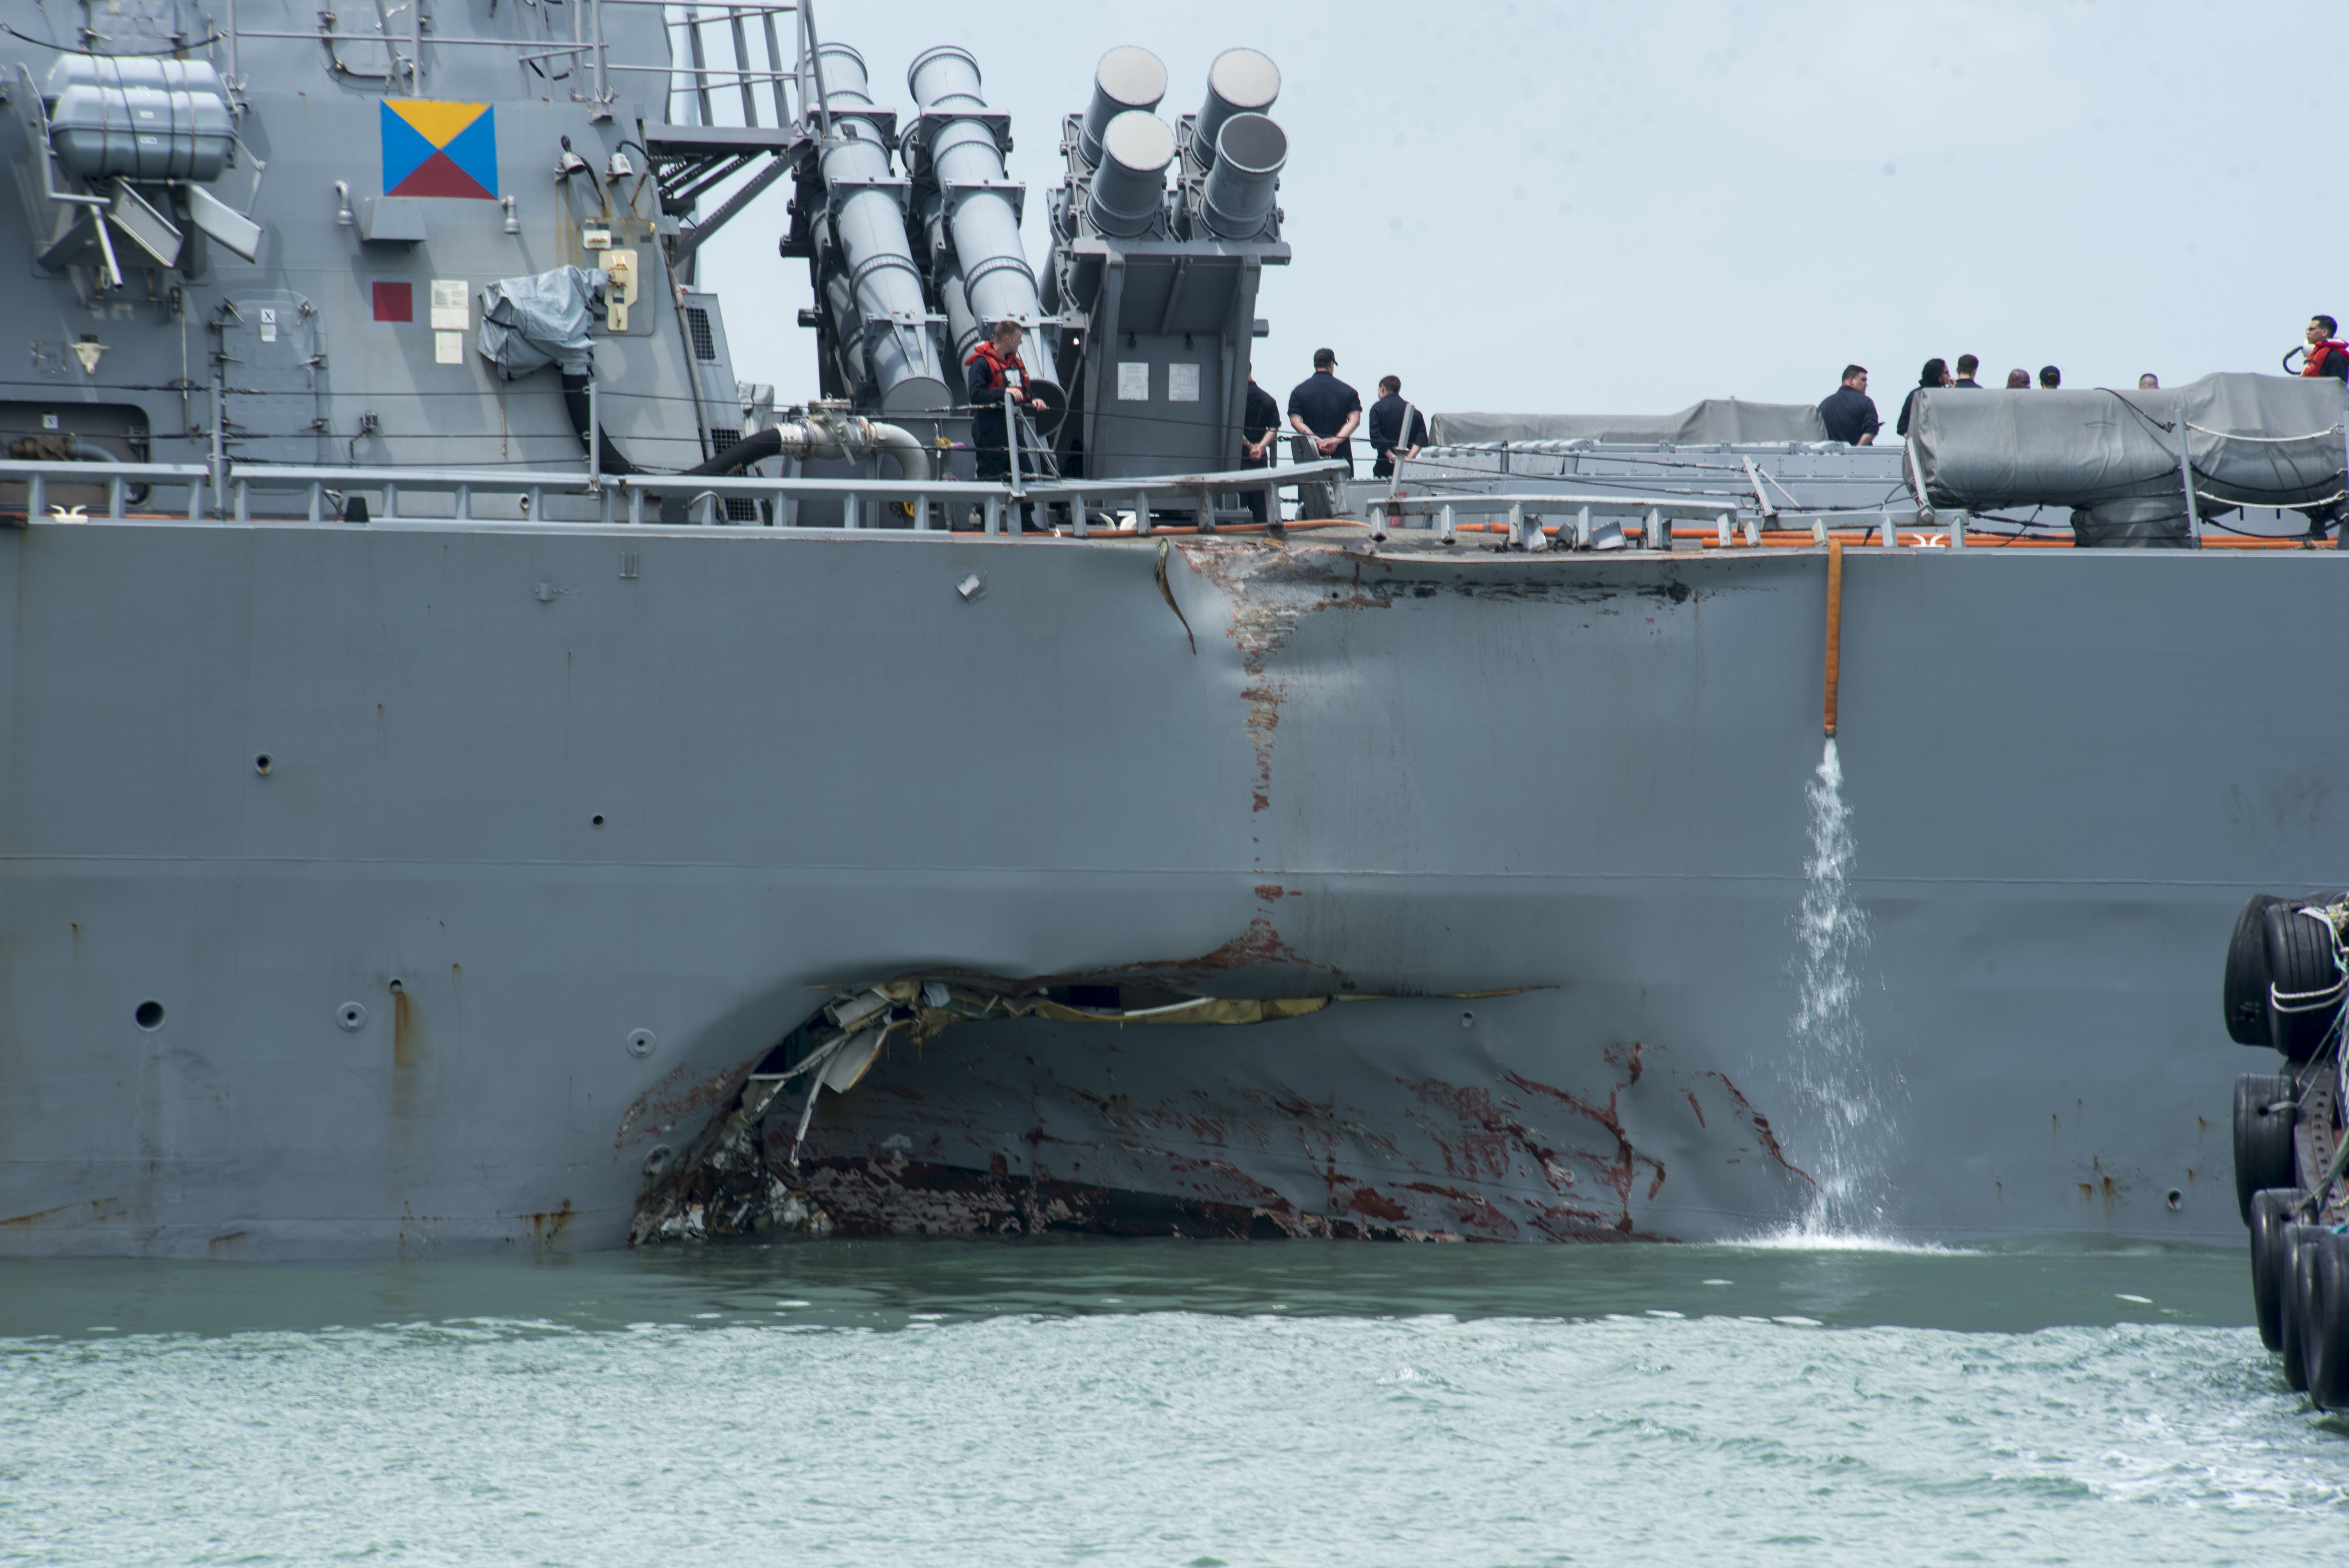 In this released U.S. Navy handout, damage to the portside is visible as the Guided-missile destroyer USS John S. McCain (DDG 56) steers towards Changi Naval Base, Republic of Singapore, following a collision with the merchant vessel Alnic MC while underway east of the Straits of Malacca and Singapore on Aug. 21.